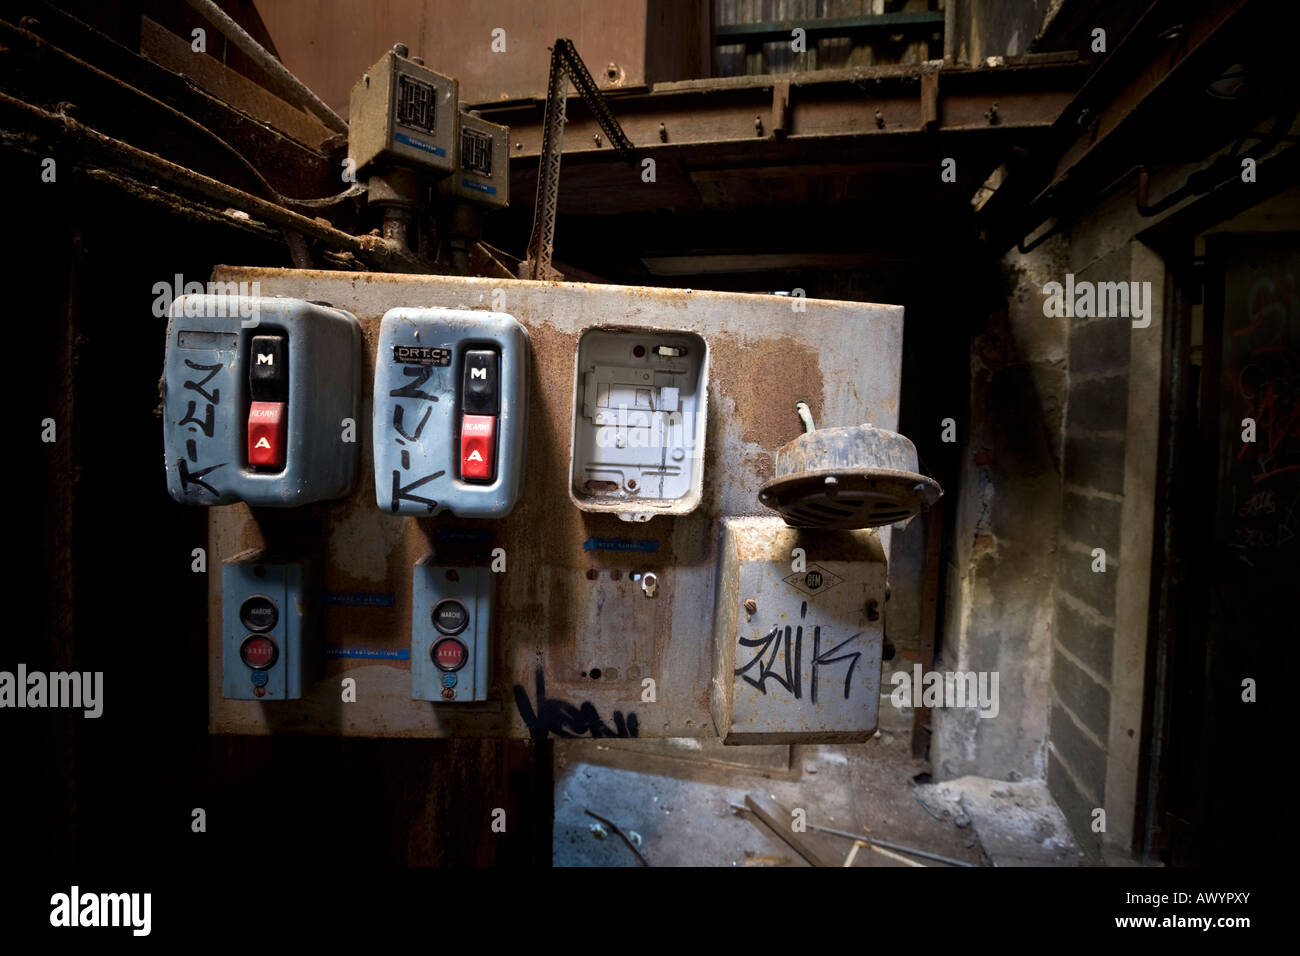 An out of service switchboard in a closed down factory. Interrupteur marche arrêt dans une usine désaffectée - Stock Image